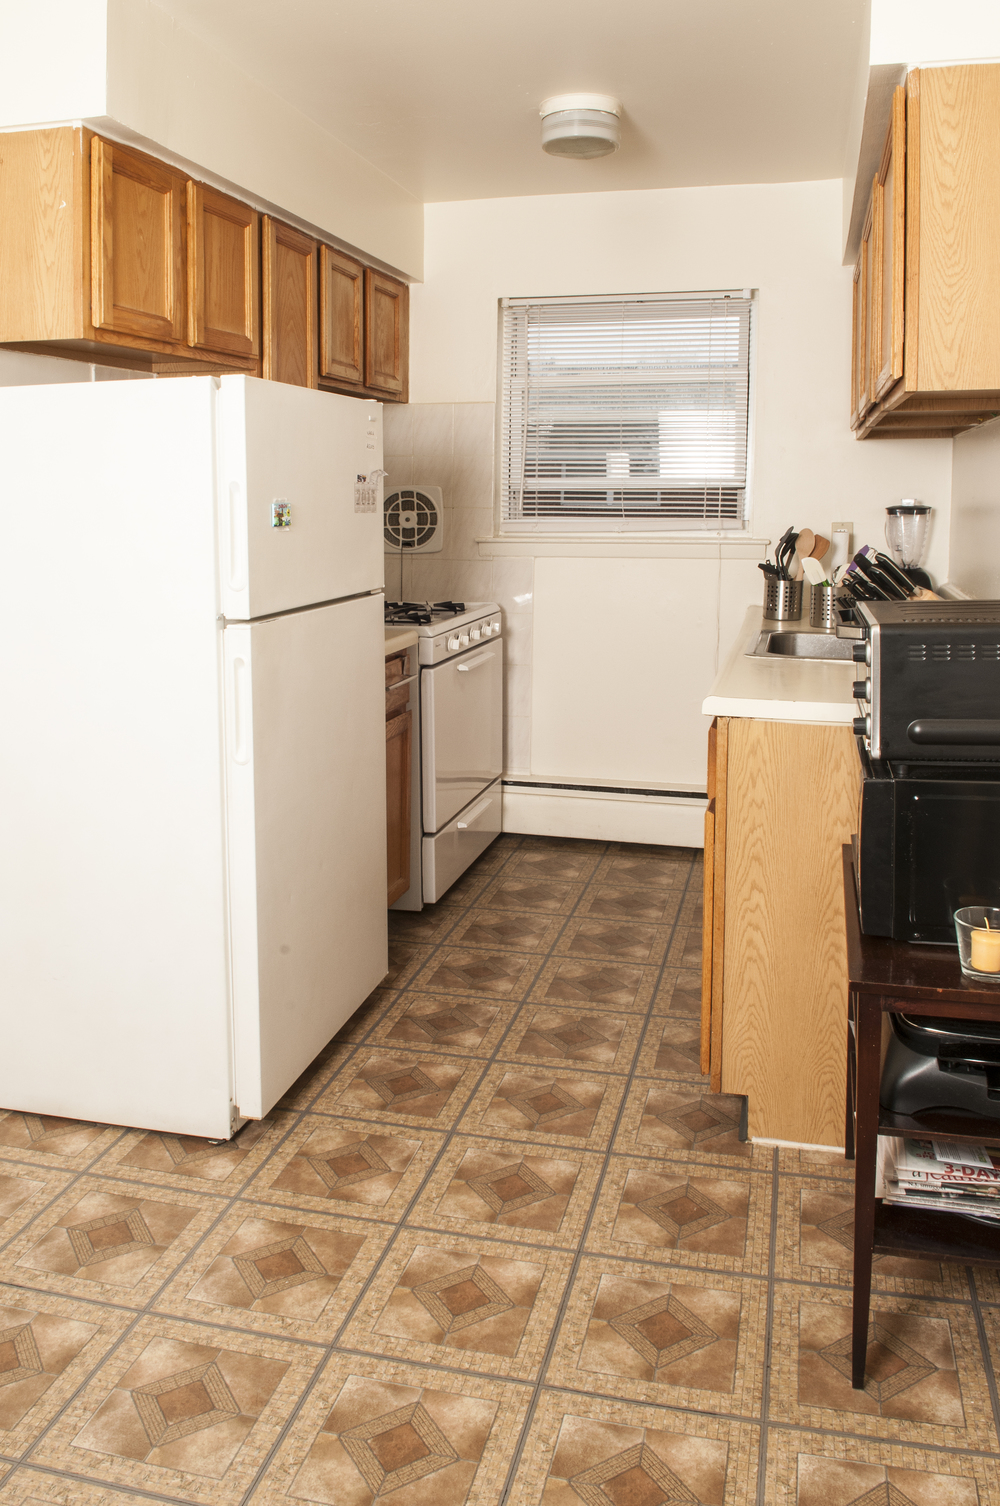 EssexStreet_1BR_Kitchen.jpg